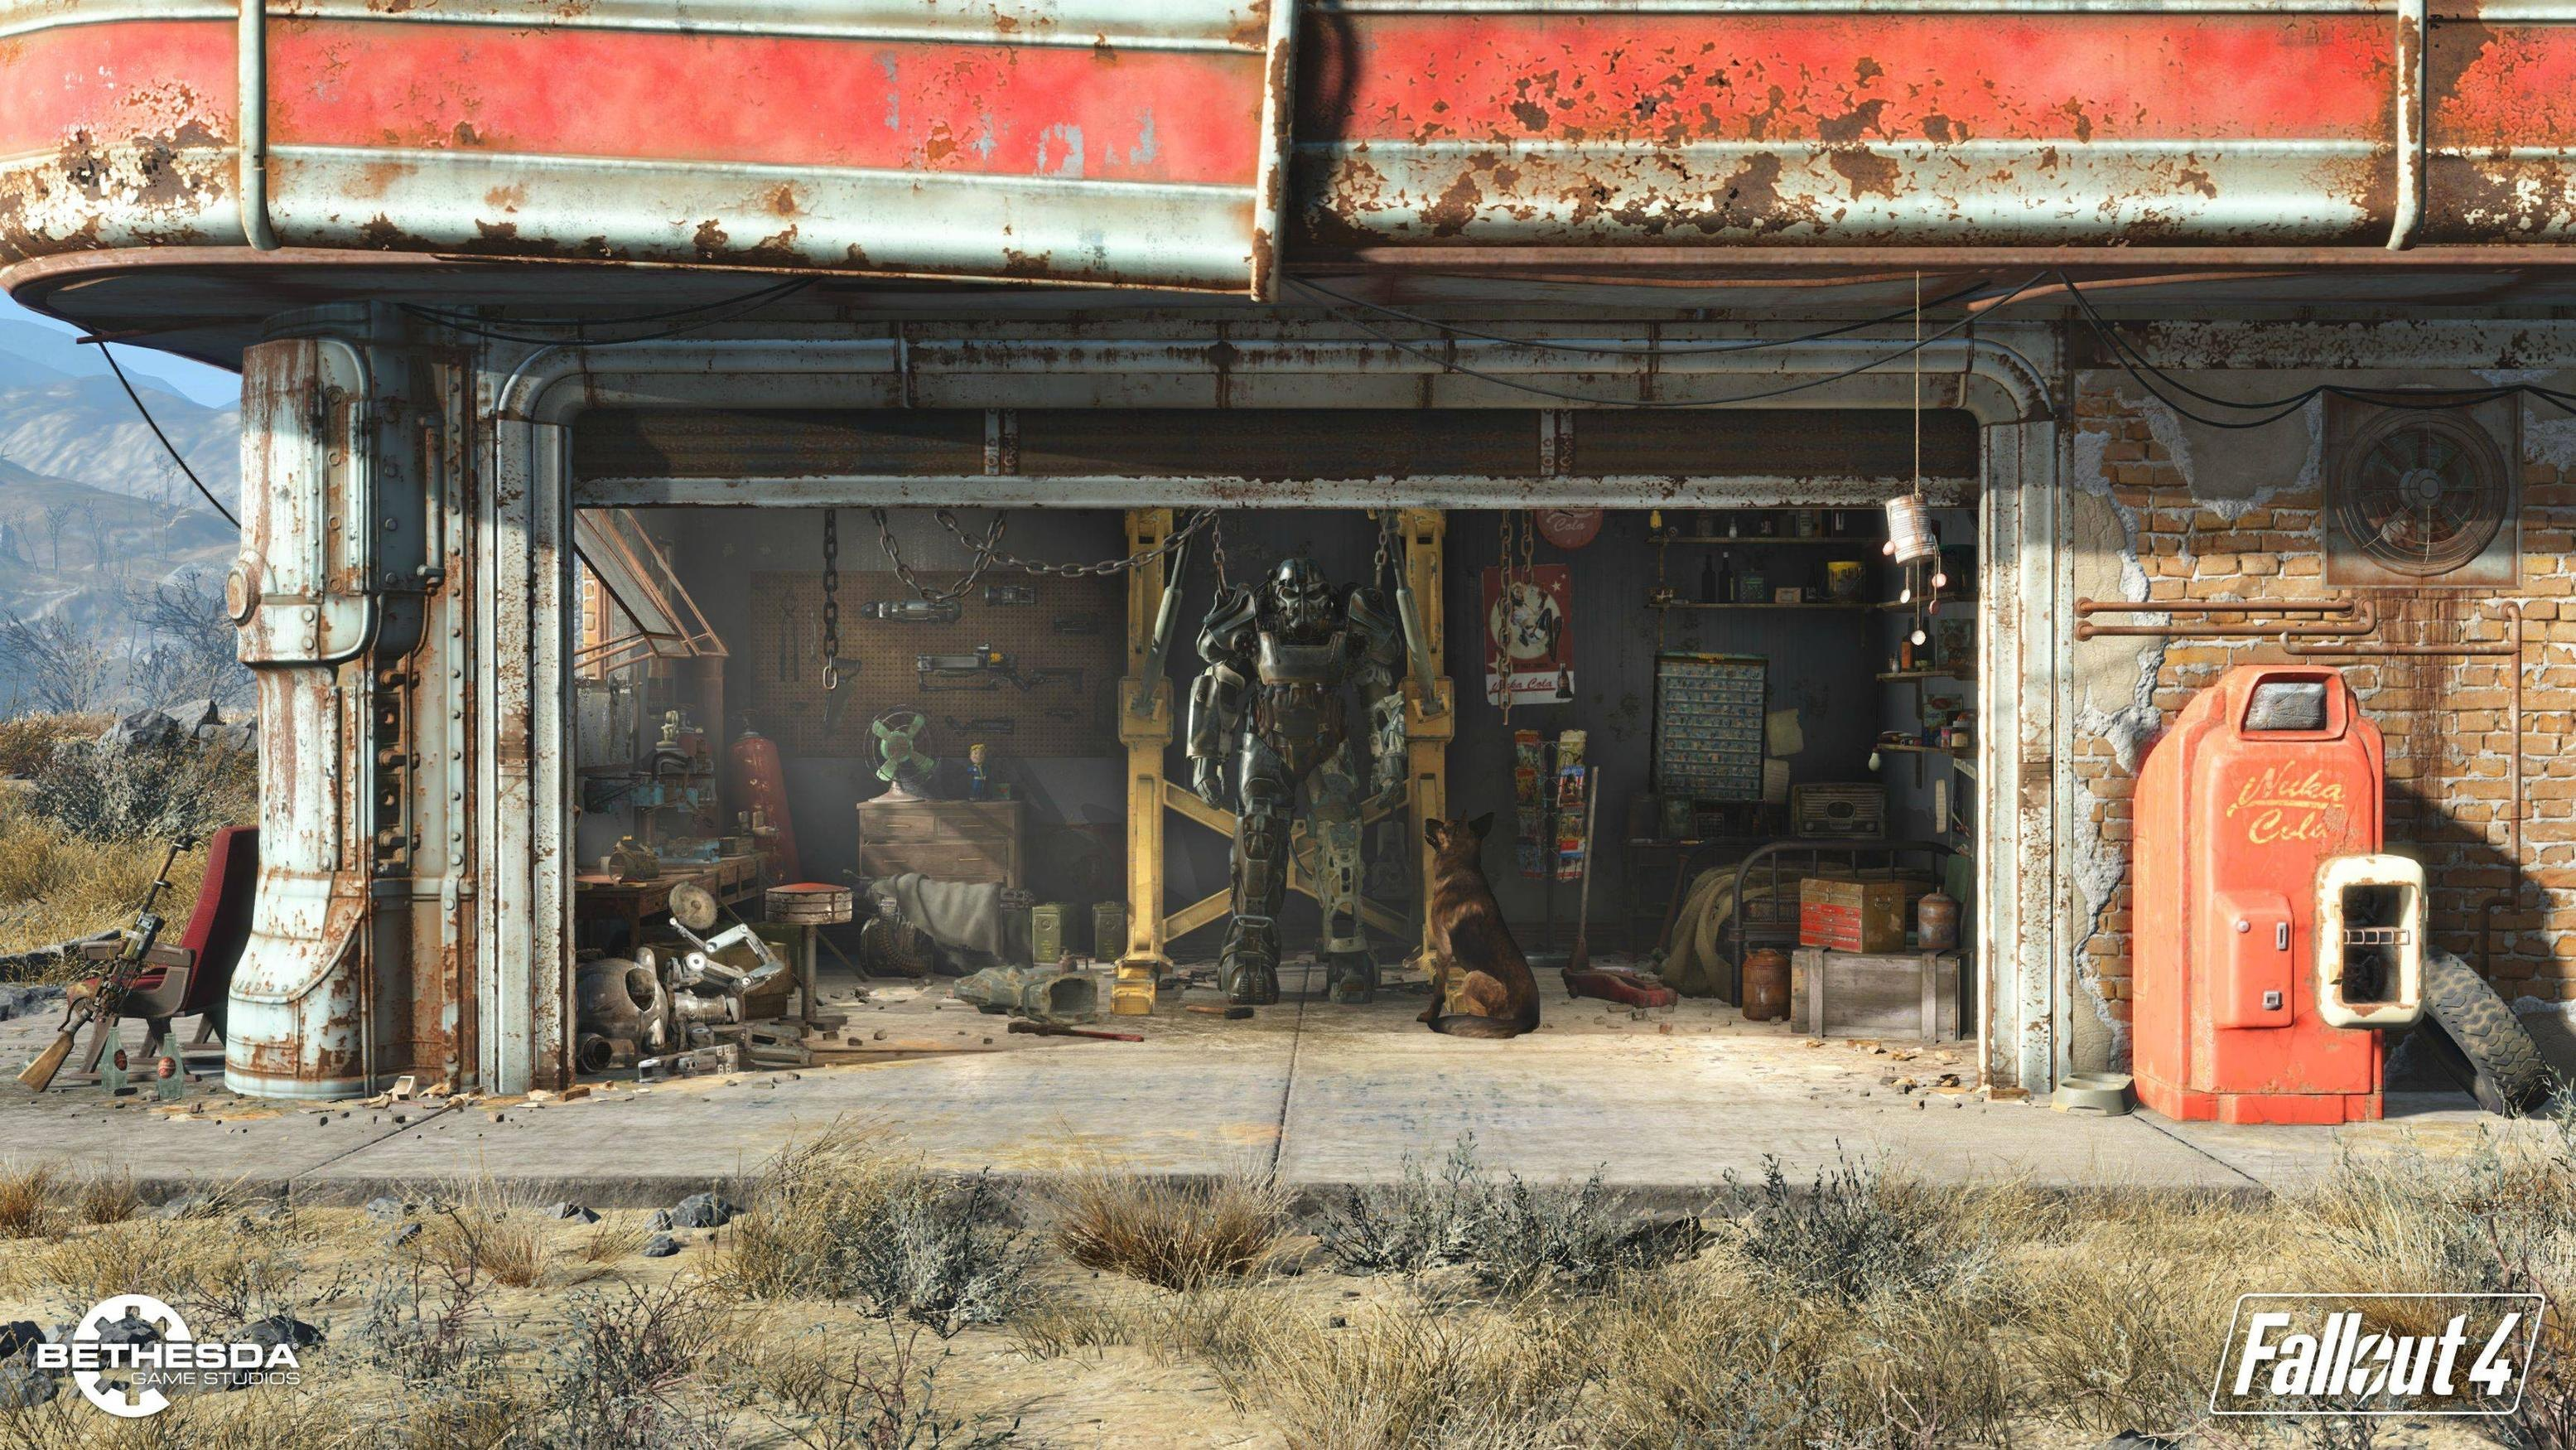 Fallout 4 Confirmed for PC PS4 Xbox One via Early Official Website 3110x1750